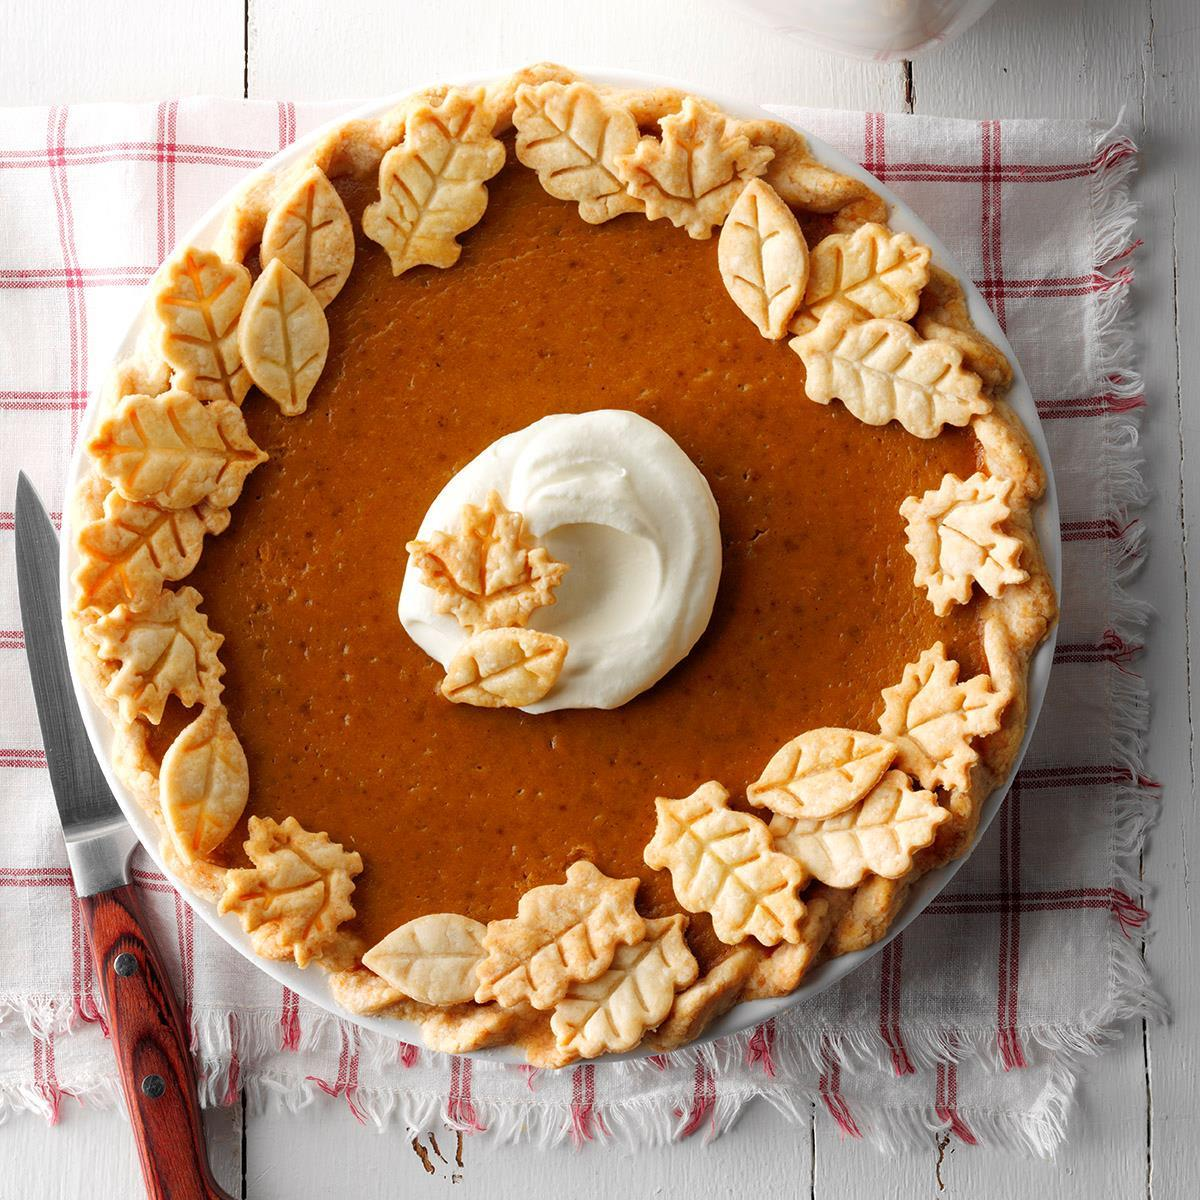 Pumpkin pie, complete with a dollop of whipped cream in the middle and with an edging of pie-dough autumn leaves